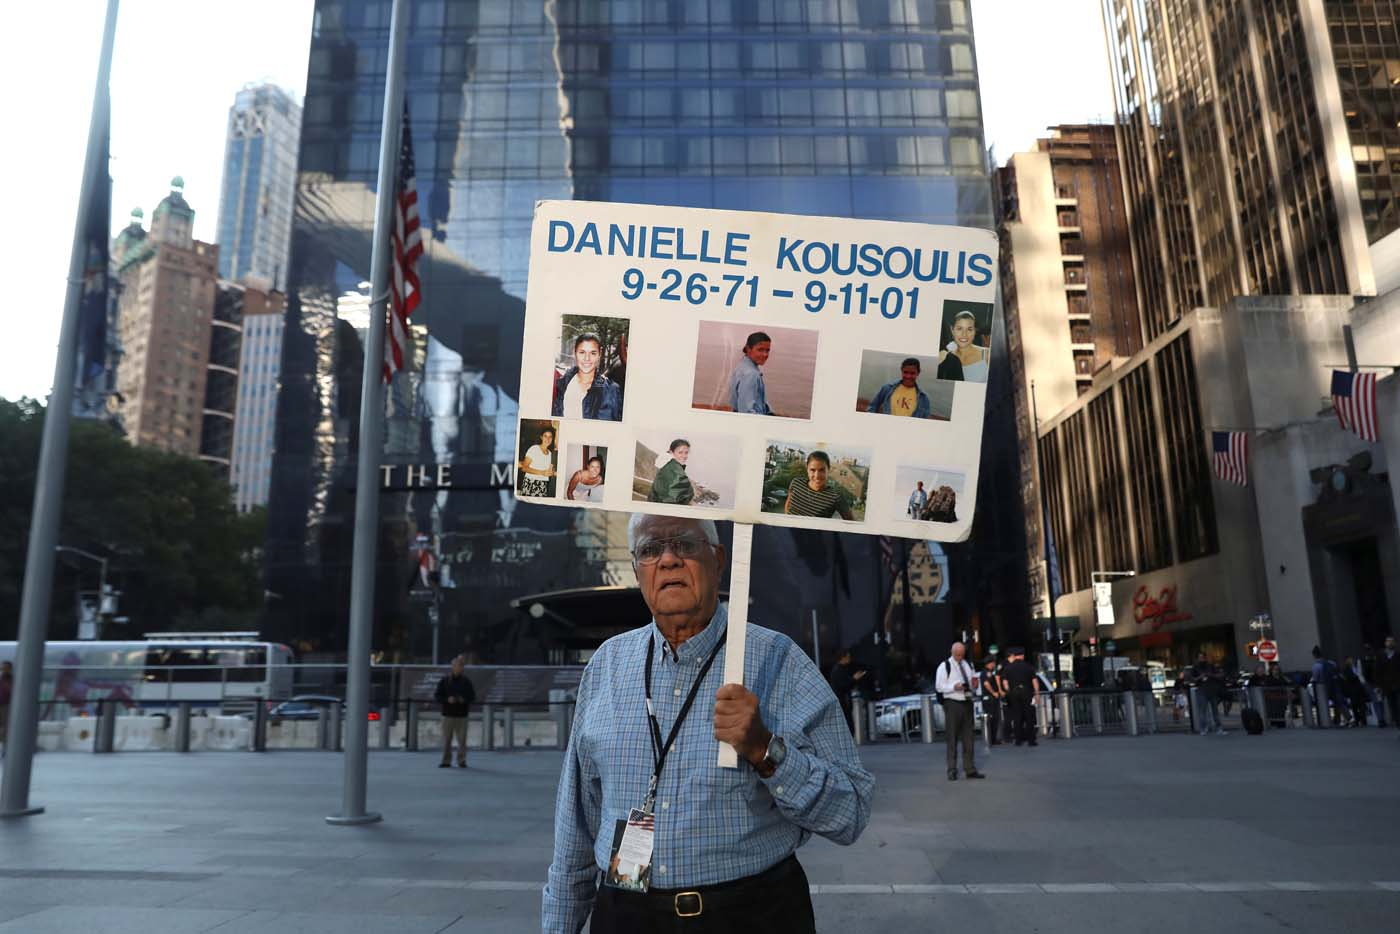 George Kousoulis holds a sign with images of his late daughter Danielle Kousoulis who was killed in the September 11, 2001 attacks in New York near the National September 11 Memorial and Museum on the 16th anniversary of the attacks in New York, U.S. September 11, 2017. REUTERS/Shannon Stapleton